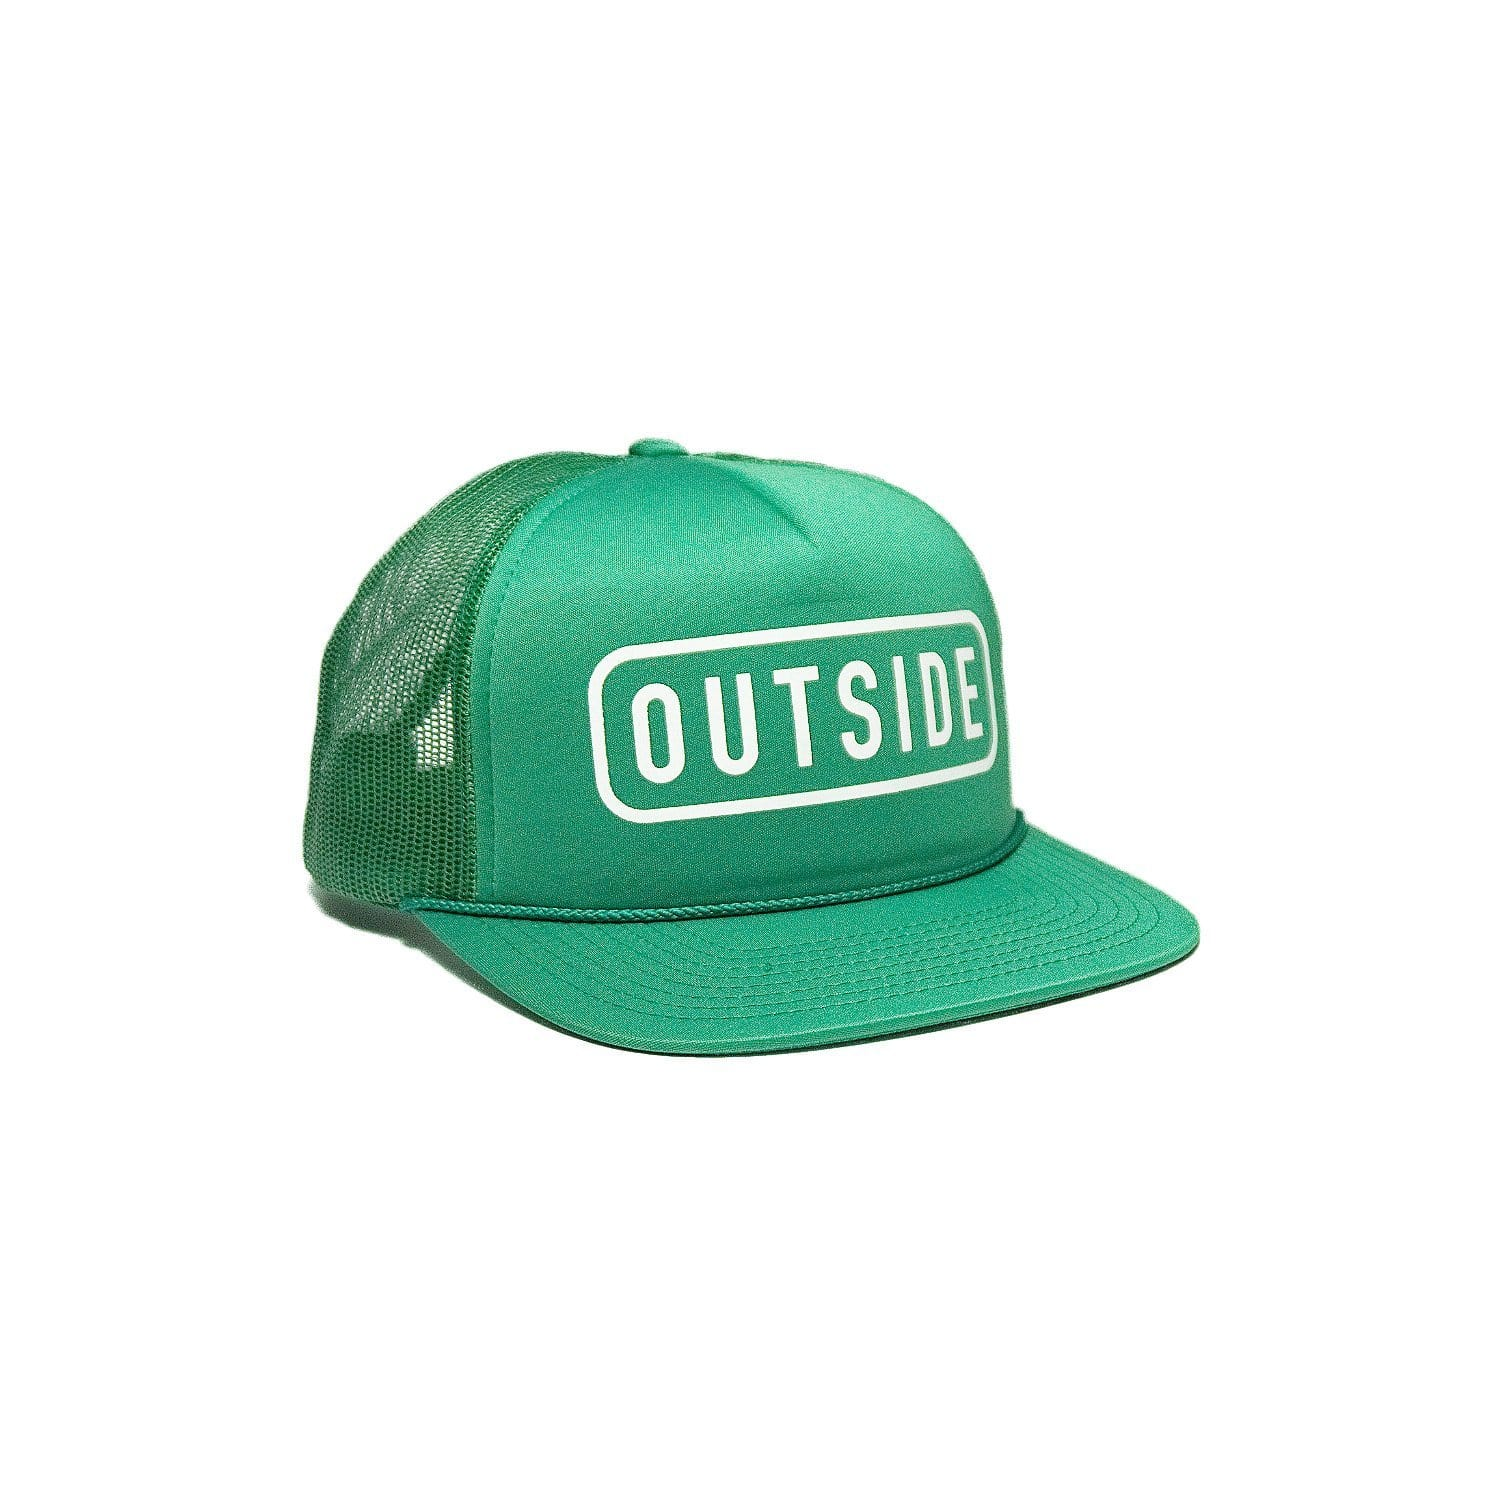 Sonnies Outside Green Snapback Trucker Hat Cap Outside